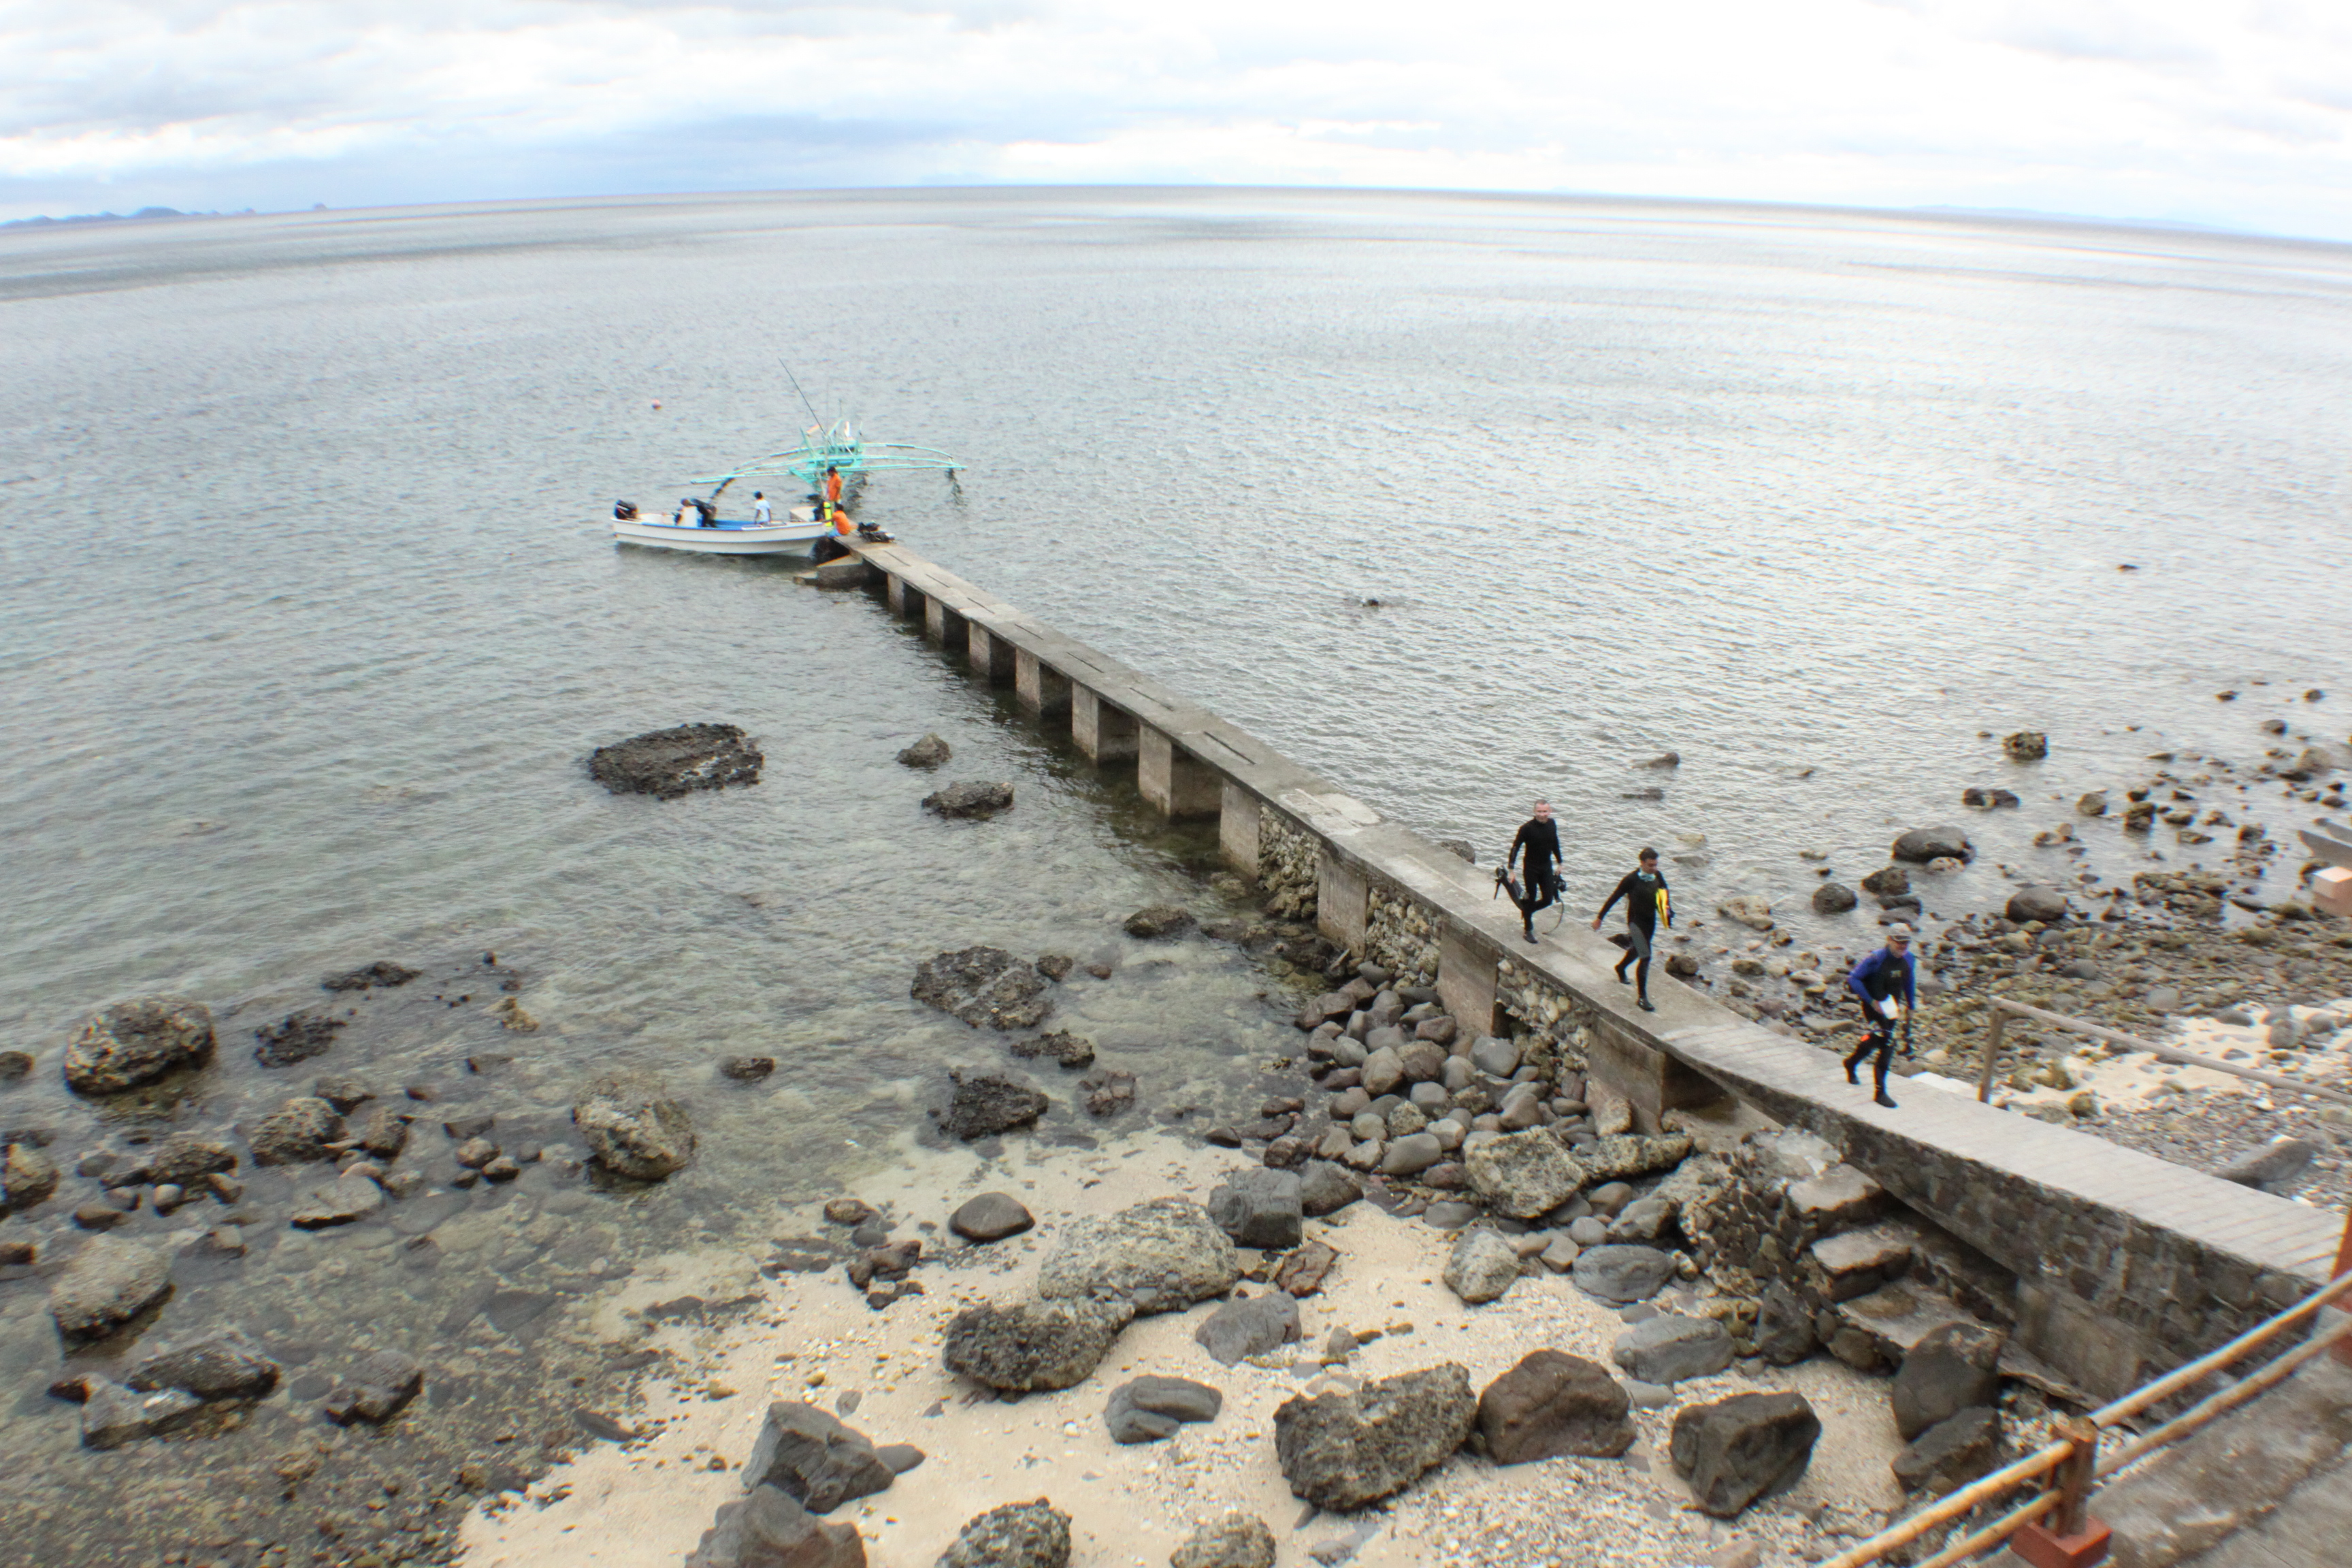 The house reef pier.